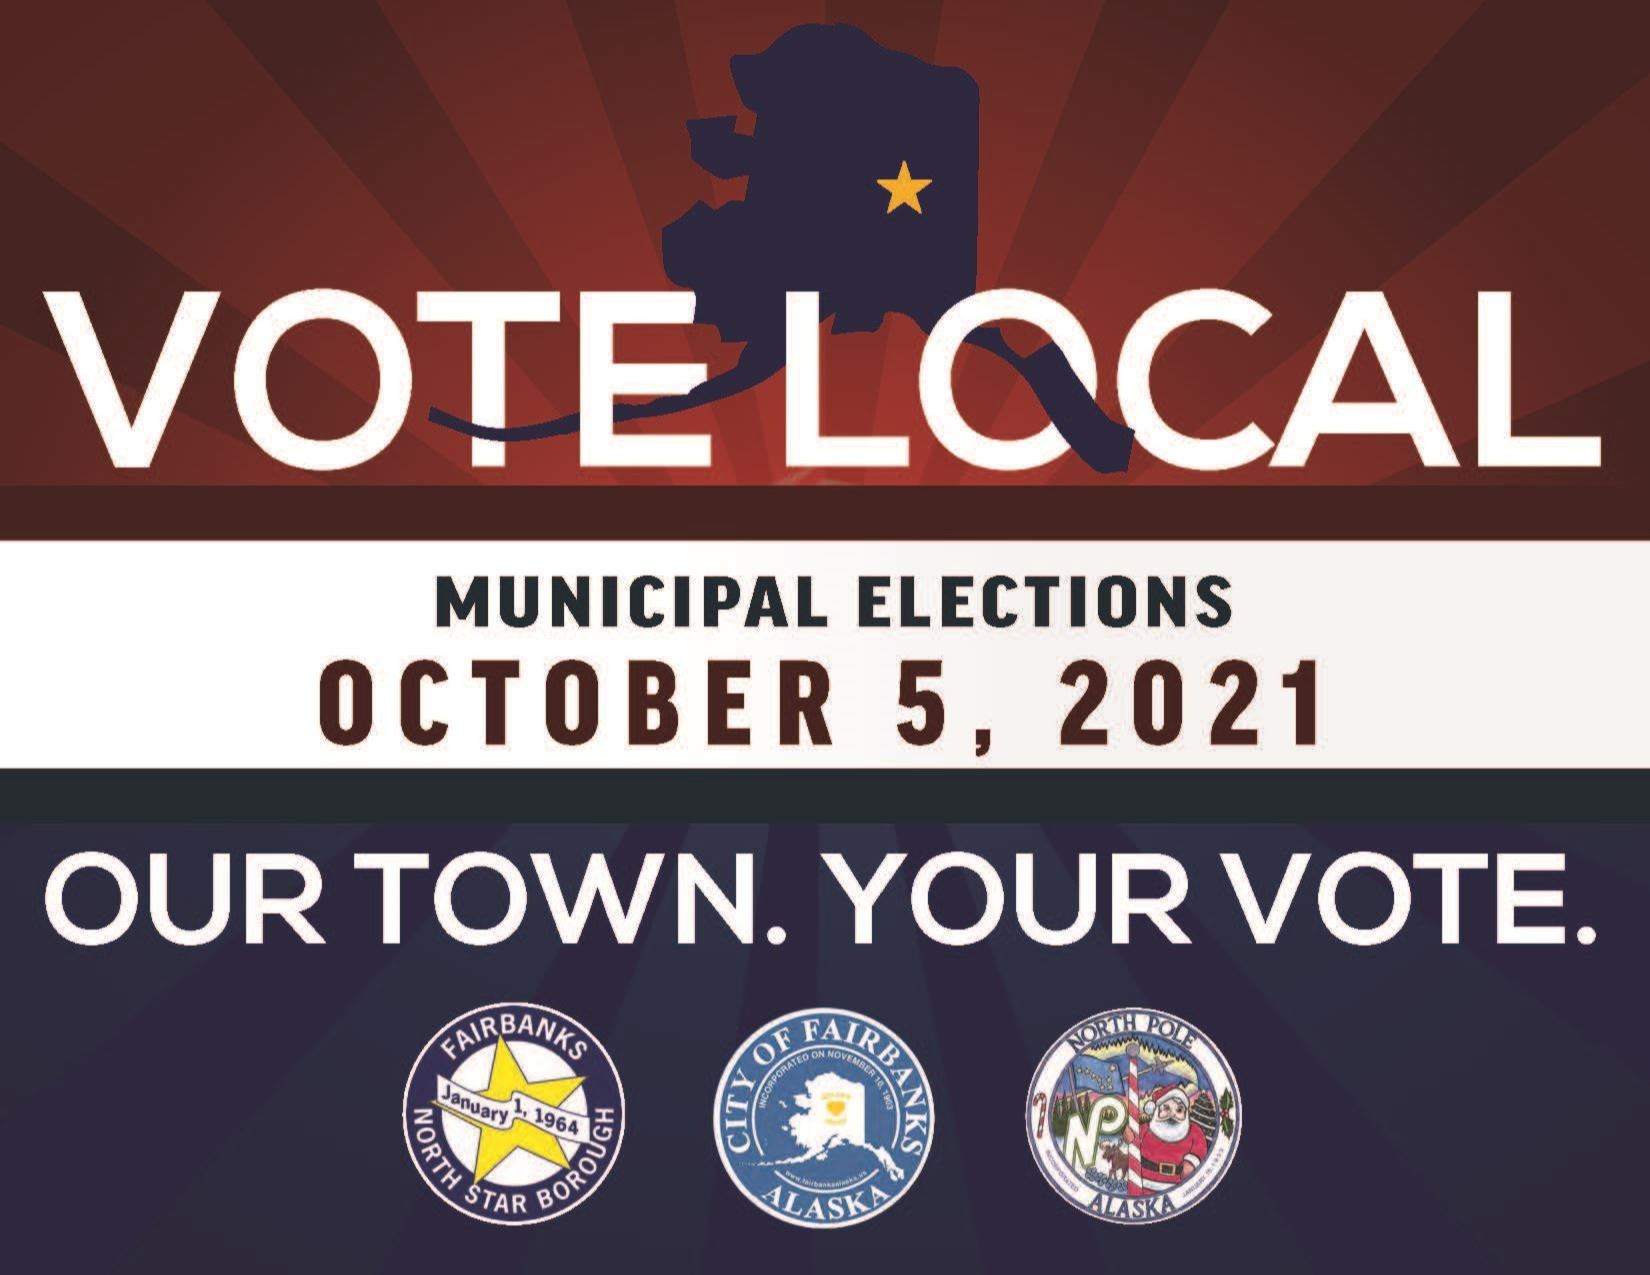 Vote Local 2021 Regular Municipal Election